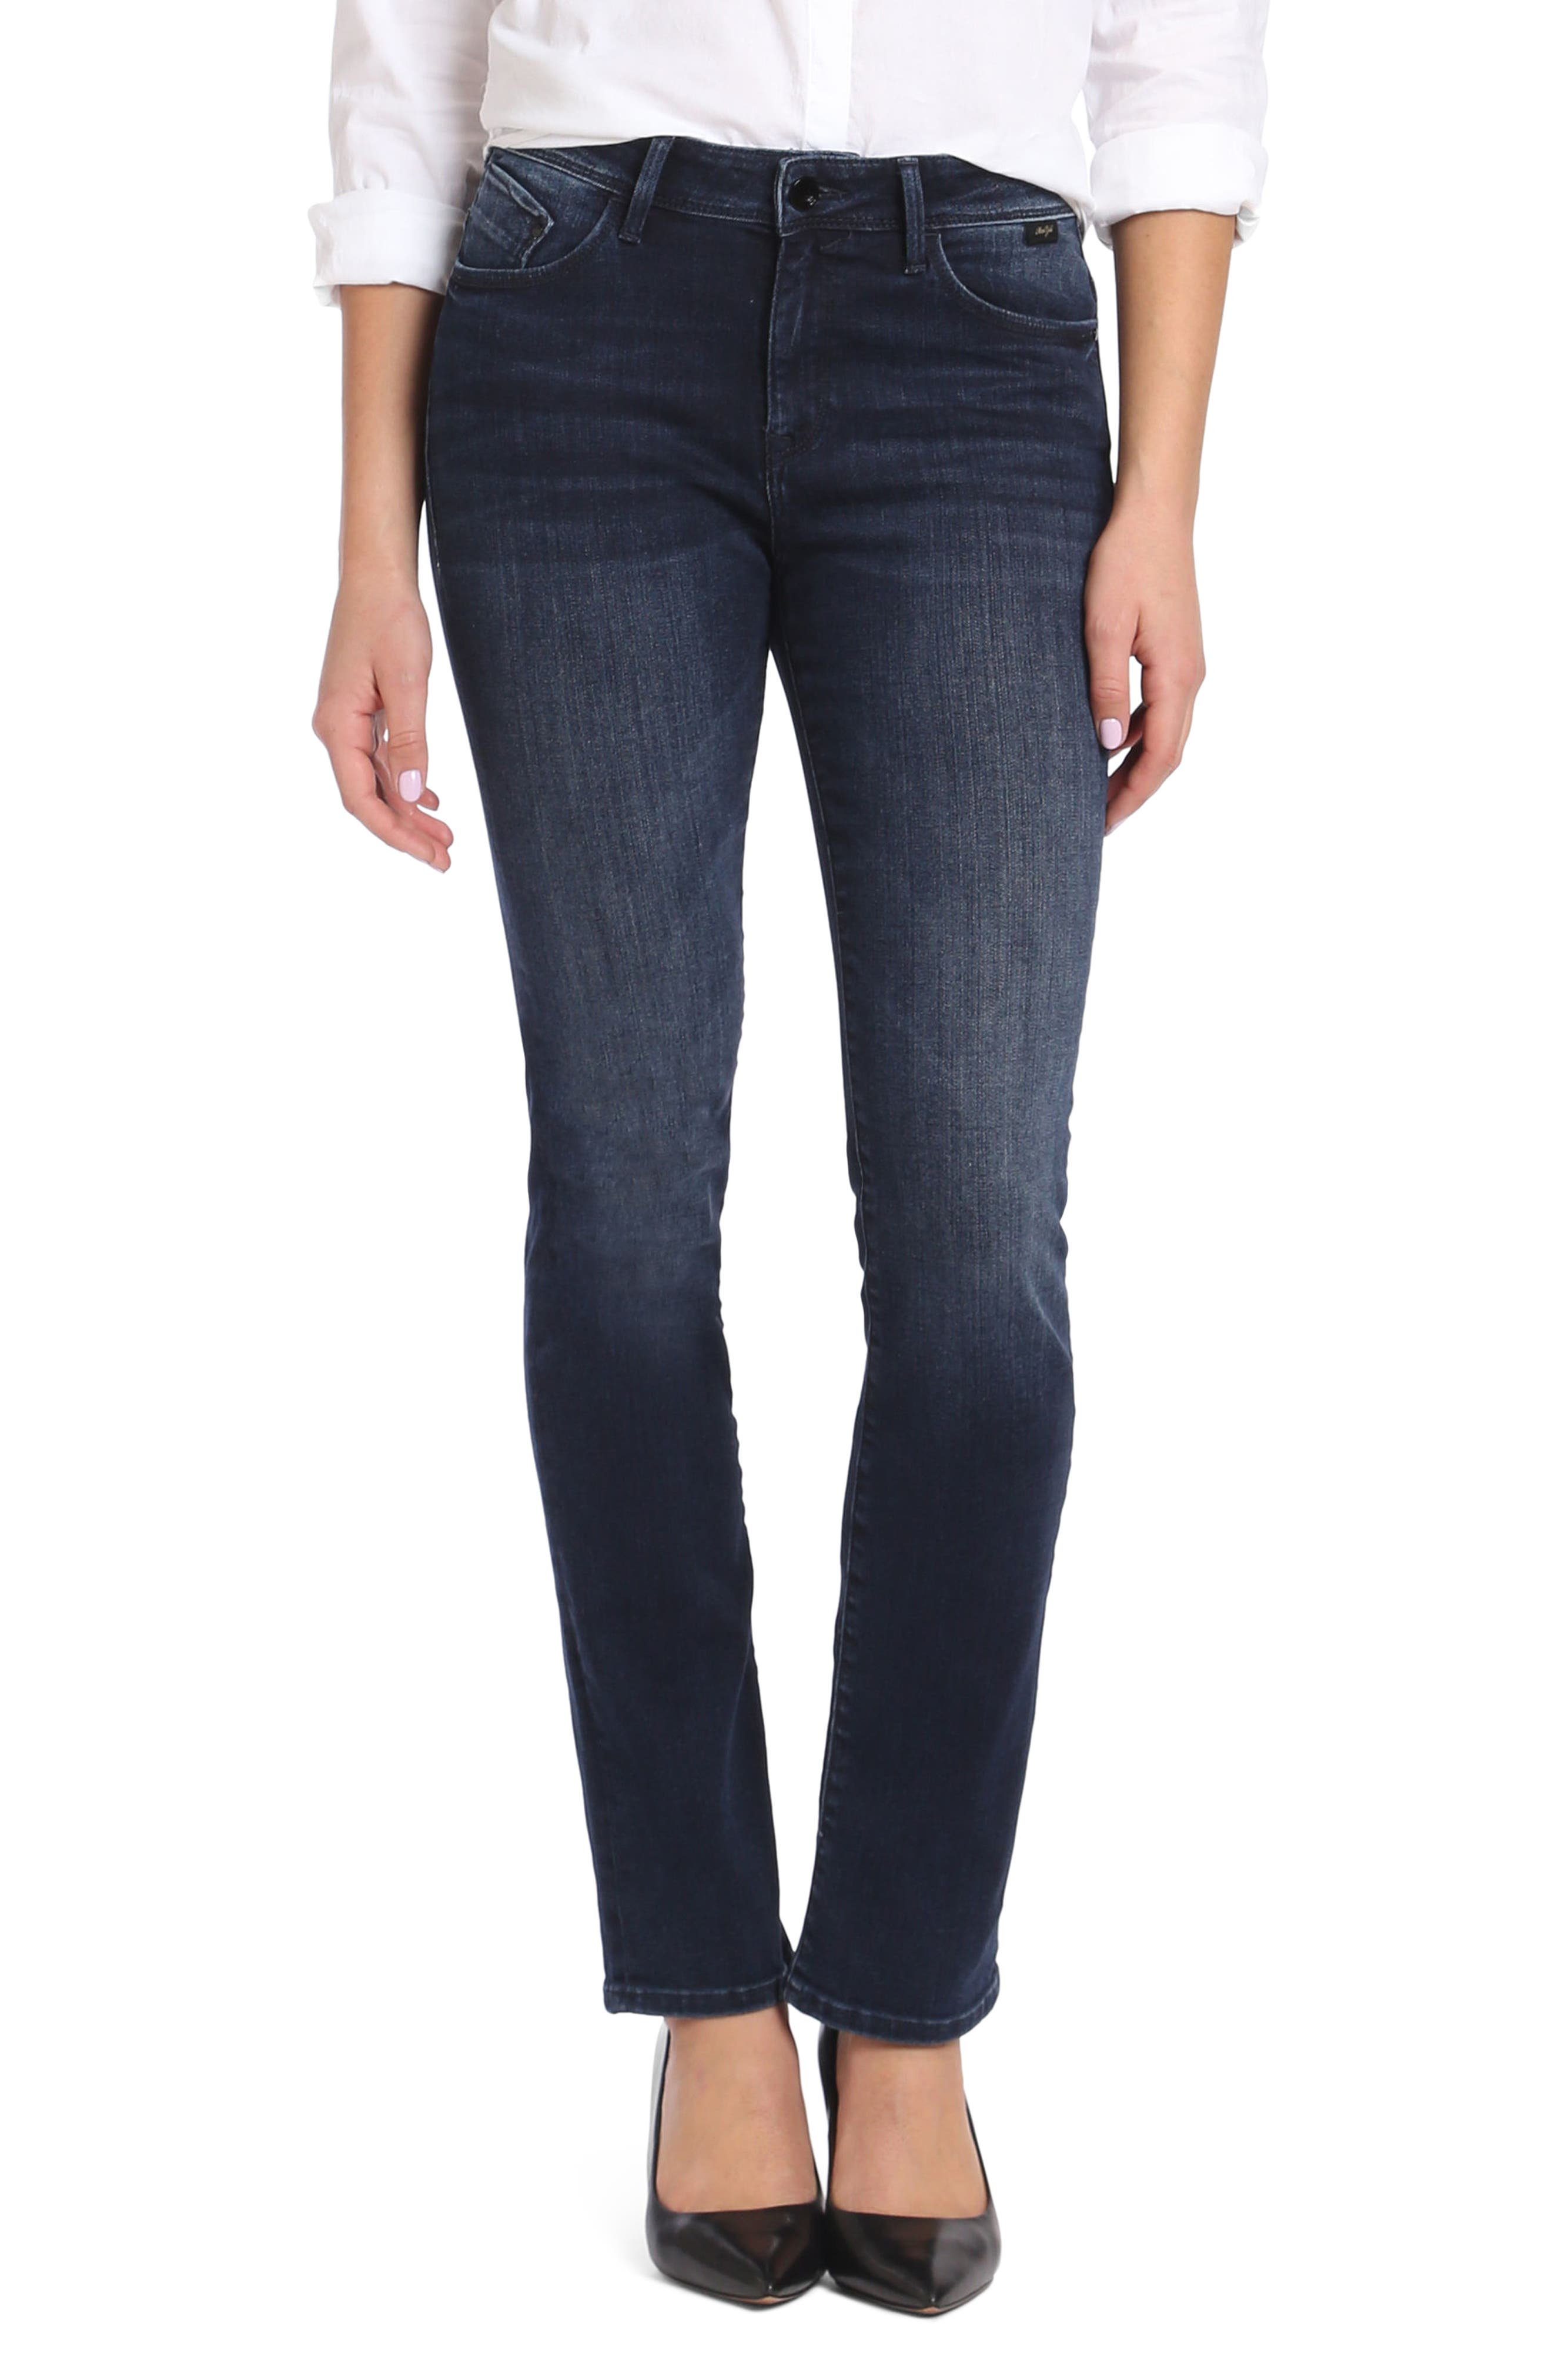 Kendra High Waist Straight Jeans,                         Main,                         color, Deep Ink Gold